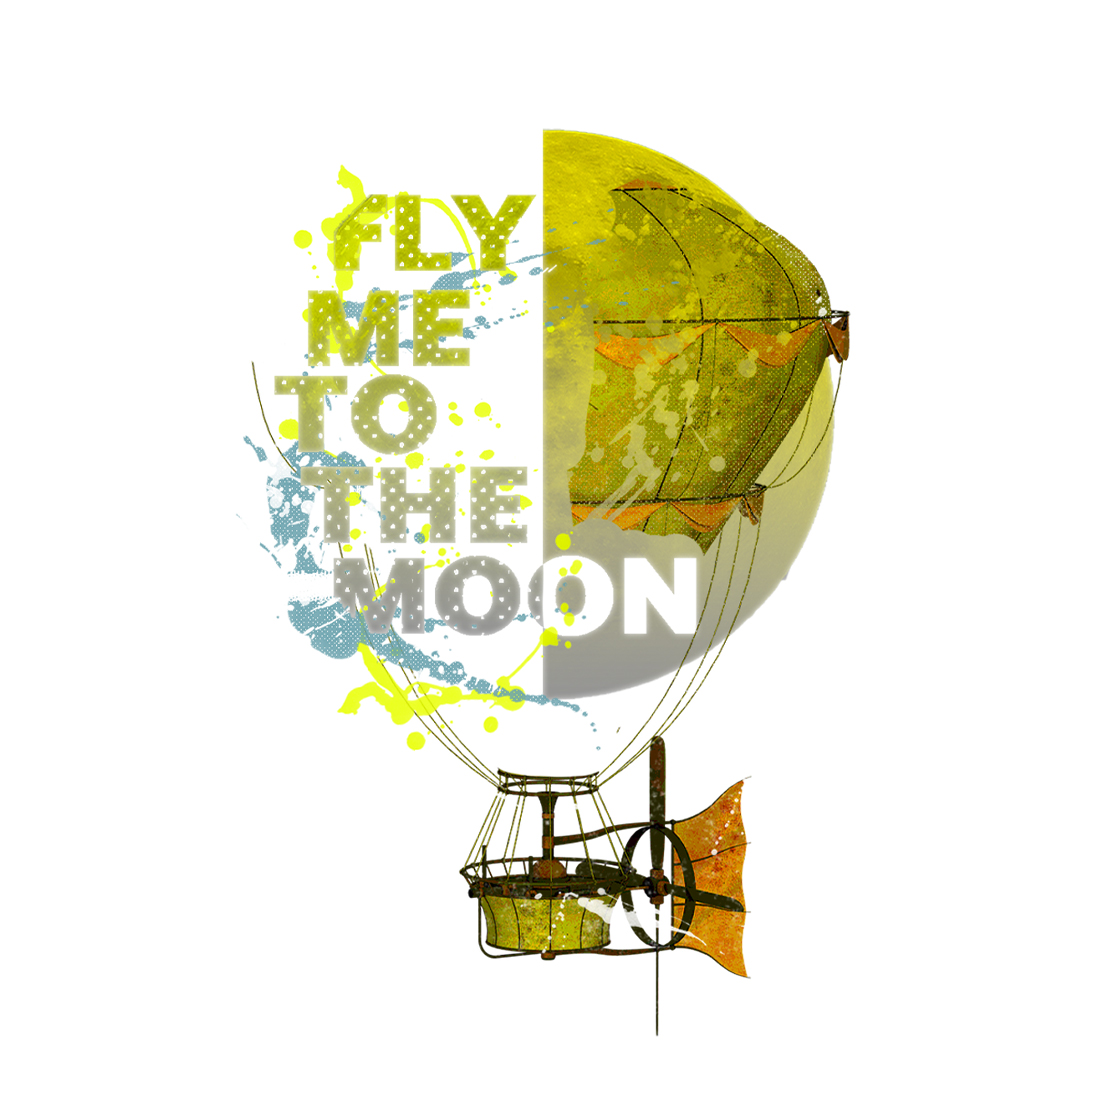 190607 – FLY ME TO THE MOON